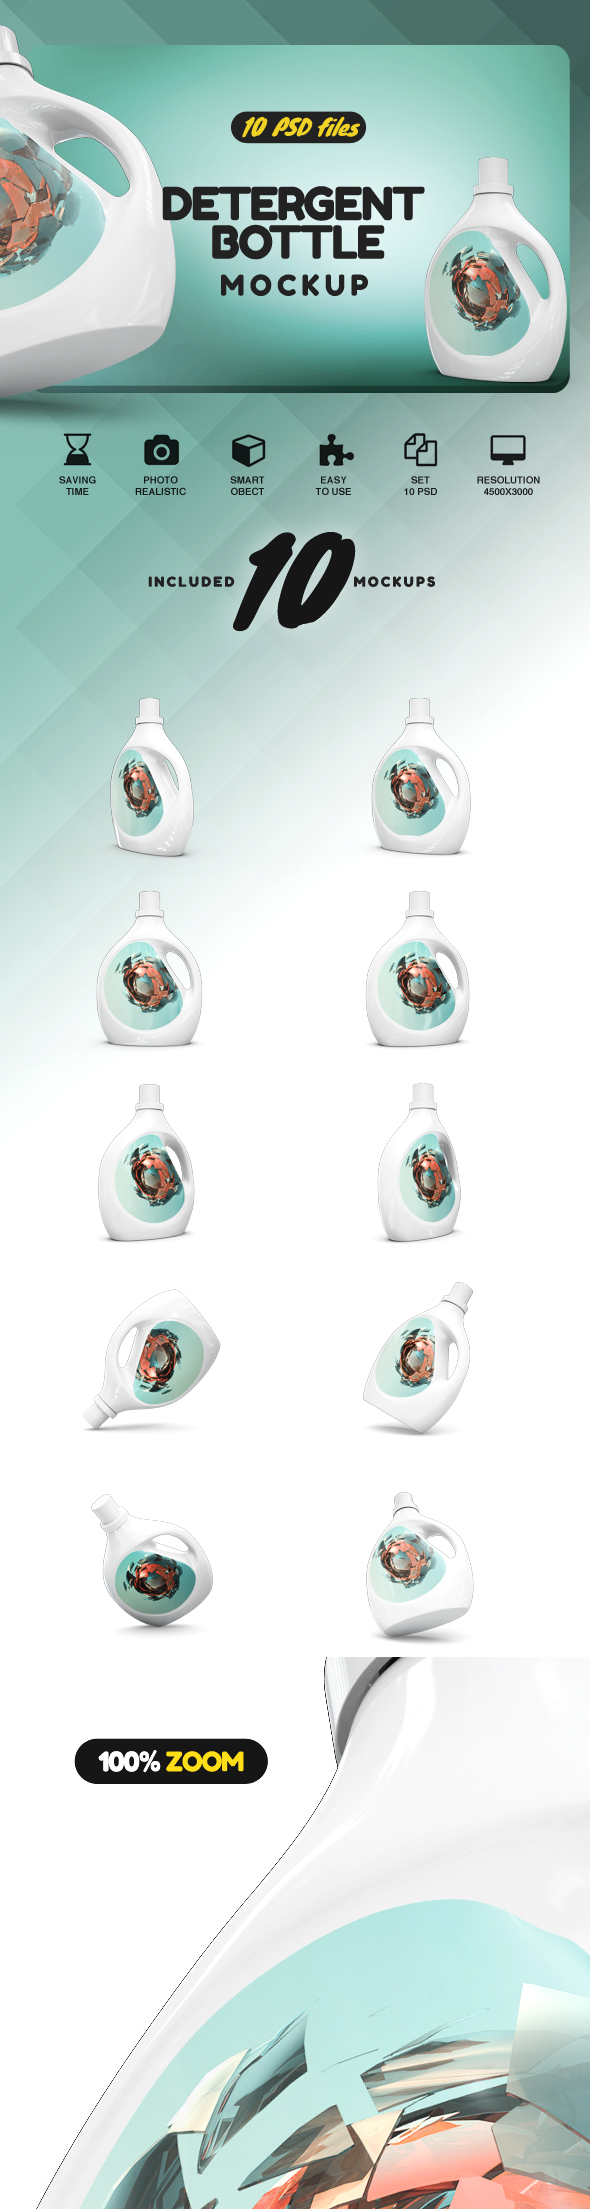 Detergent Bottle Mockup example image 2